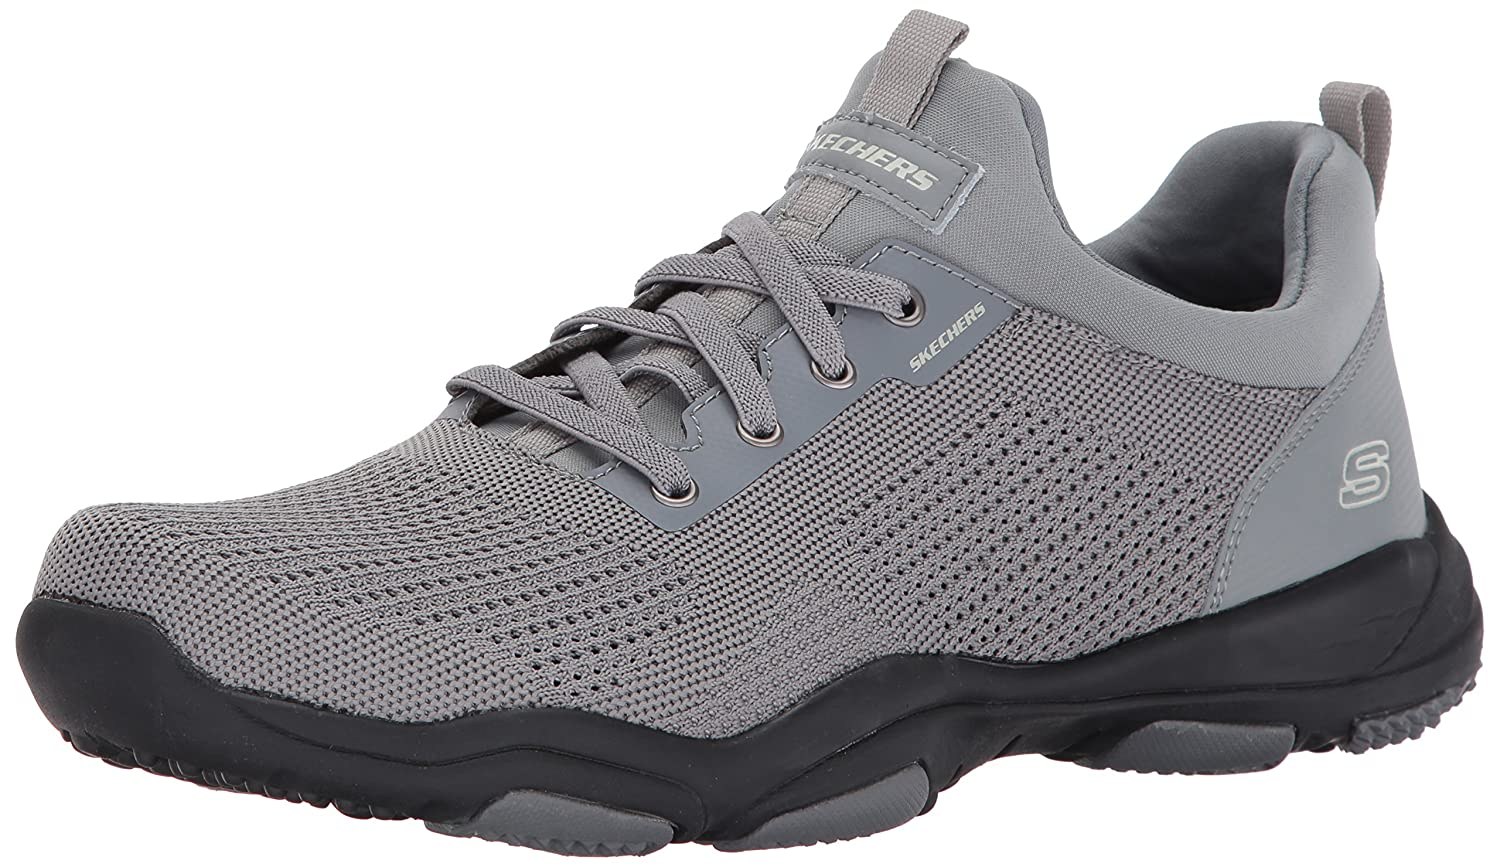 Skechers USA Mens Larson Norven Oxford  11.5 D(M) US|Gray